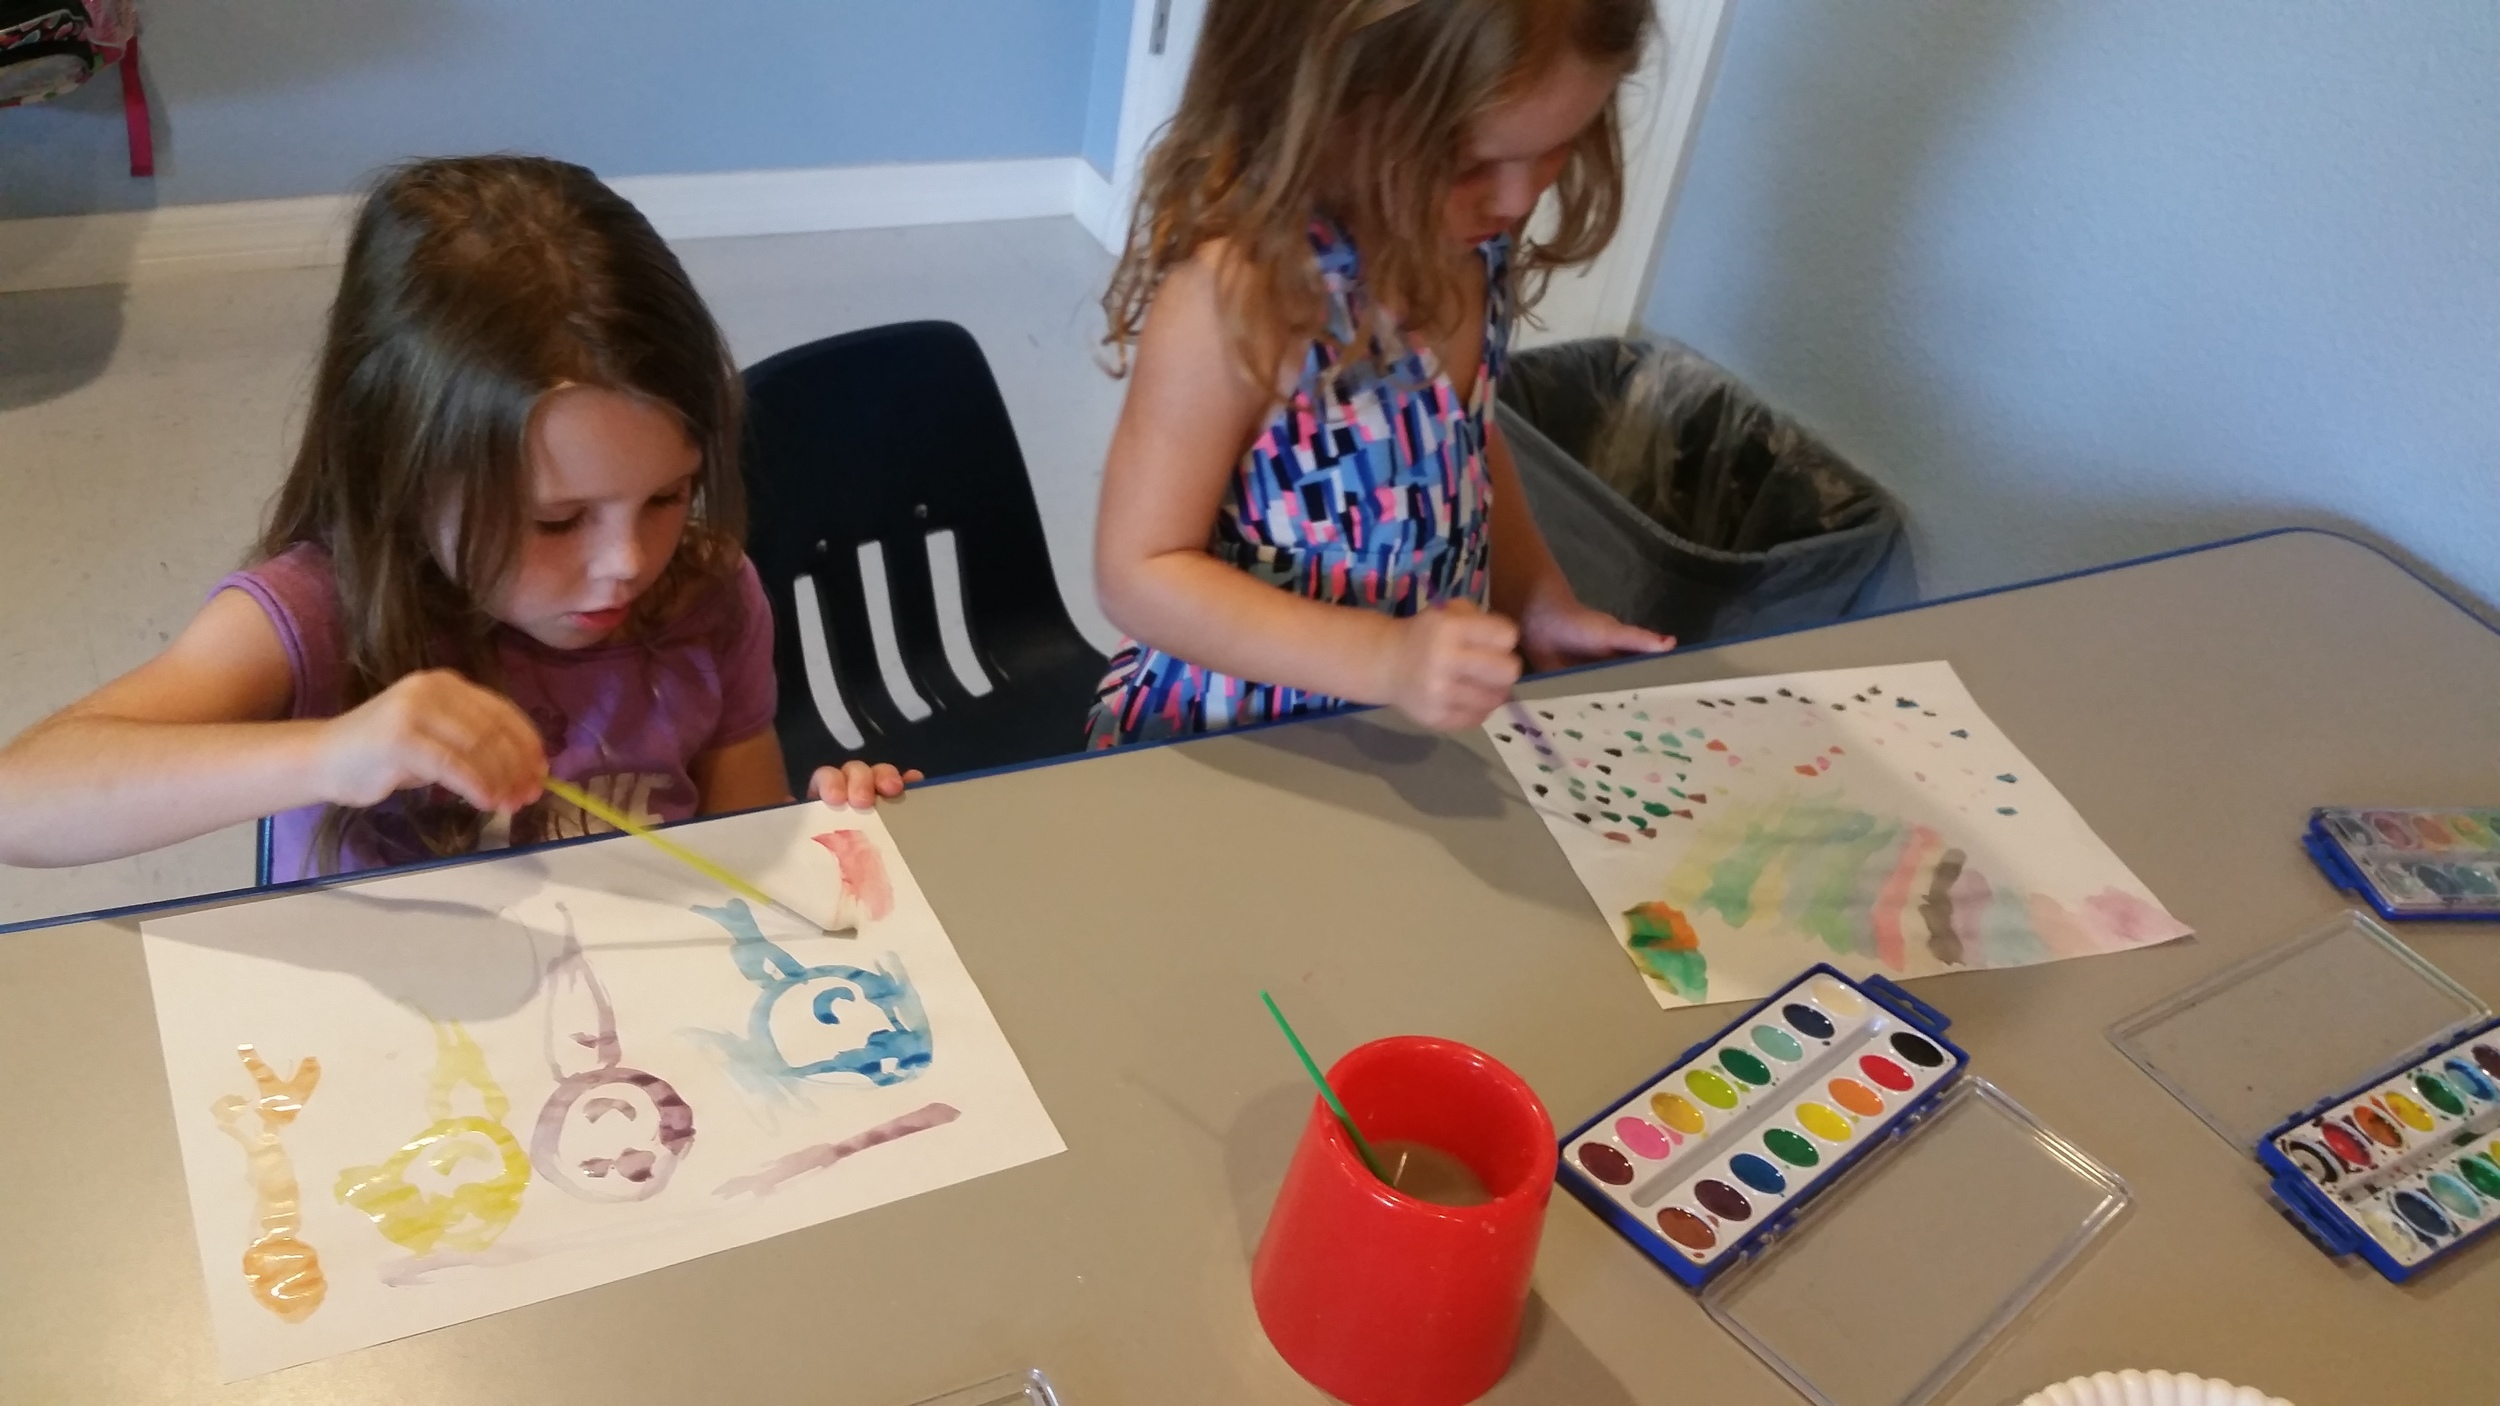 Our youngest campers really put a lot of thought into their watercolor work.